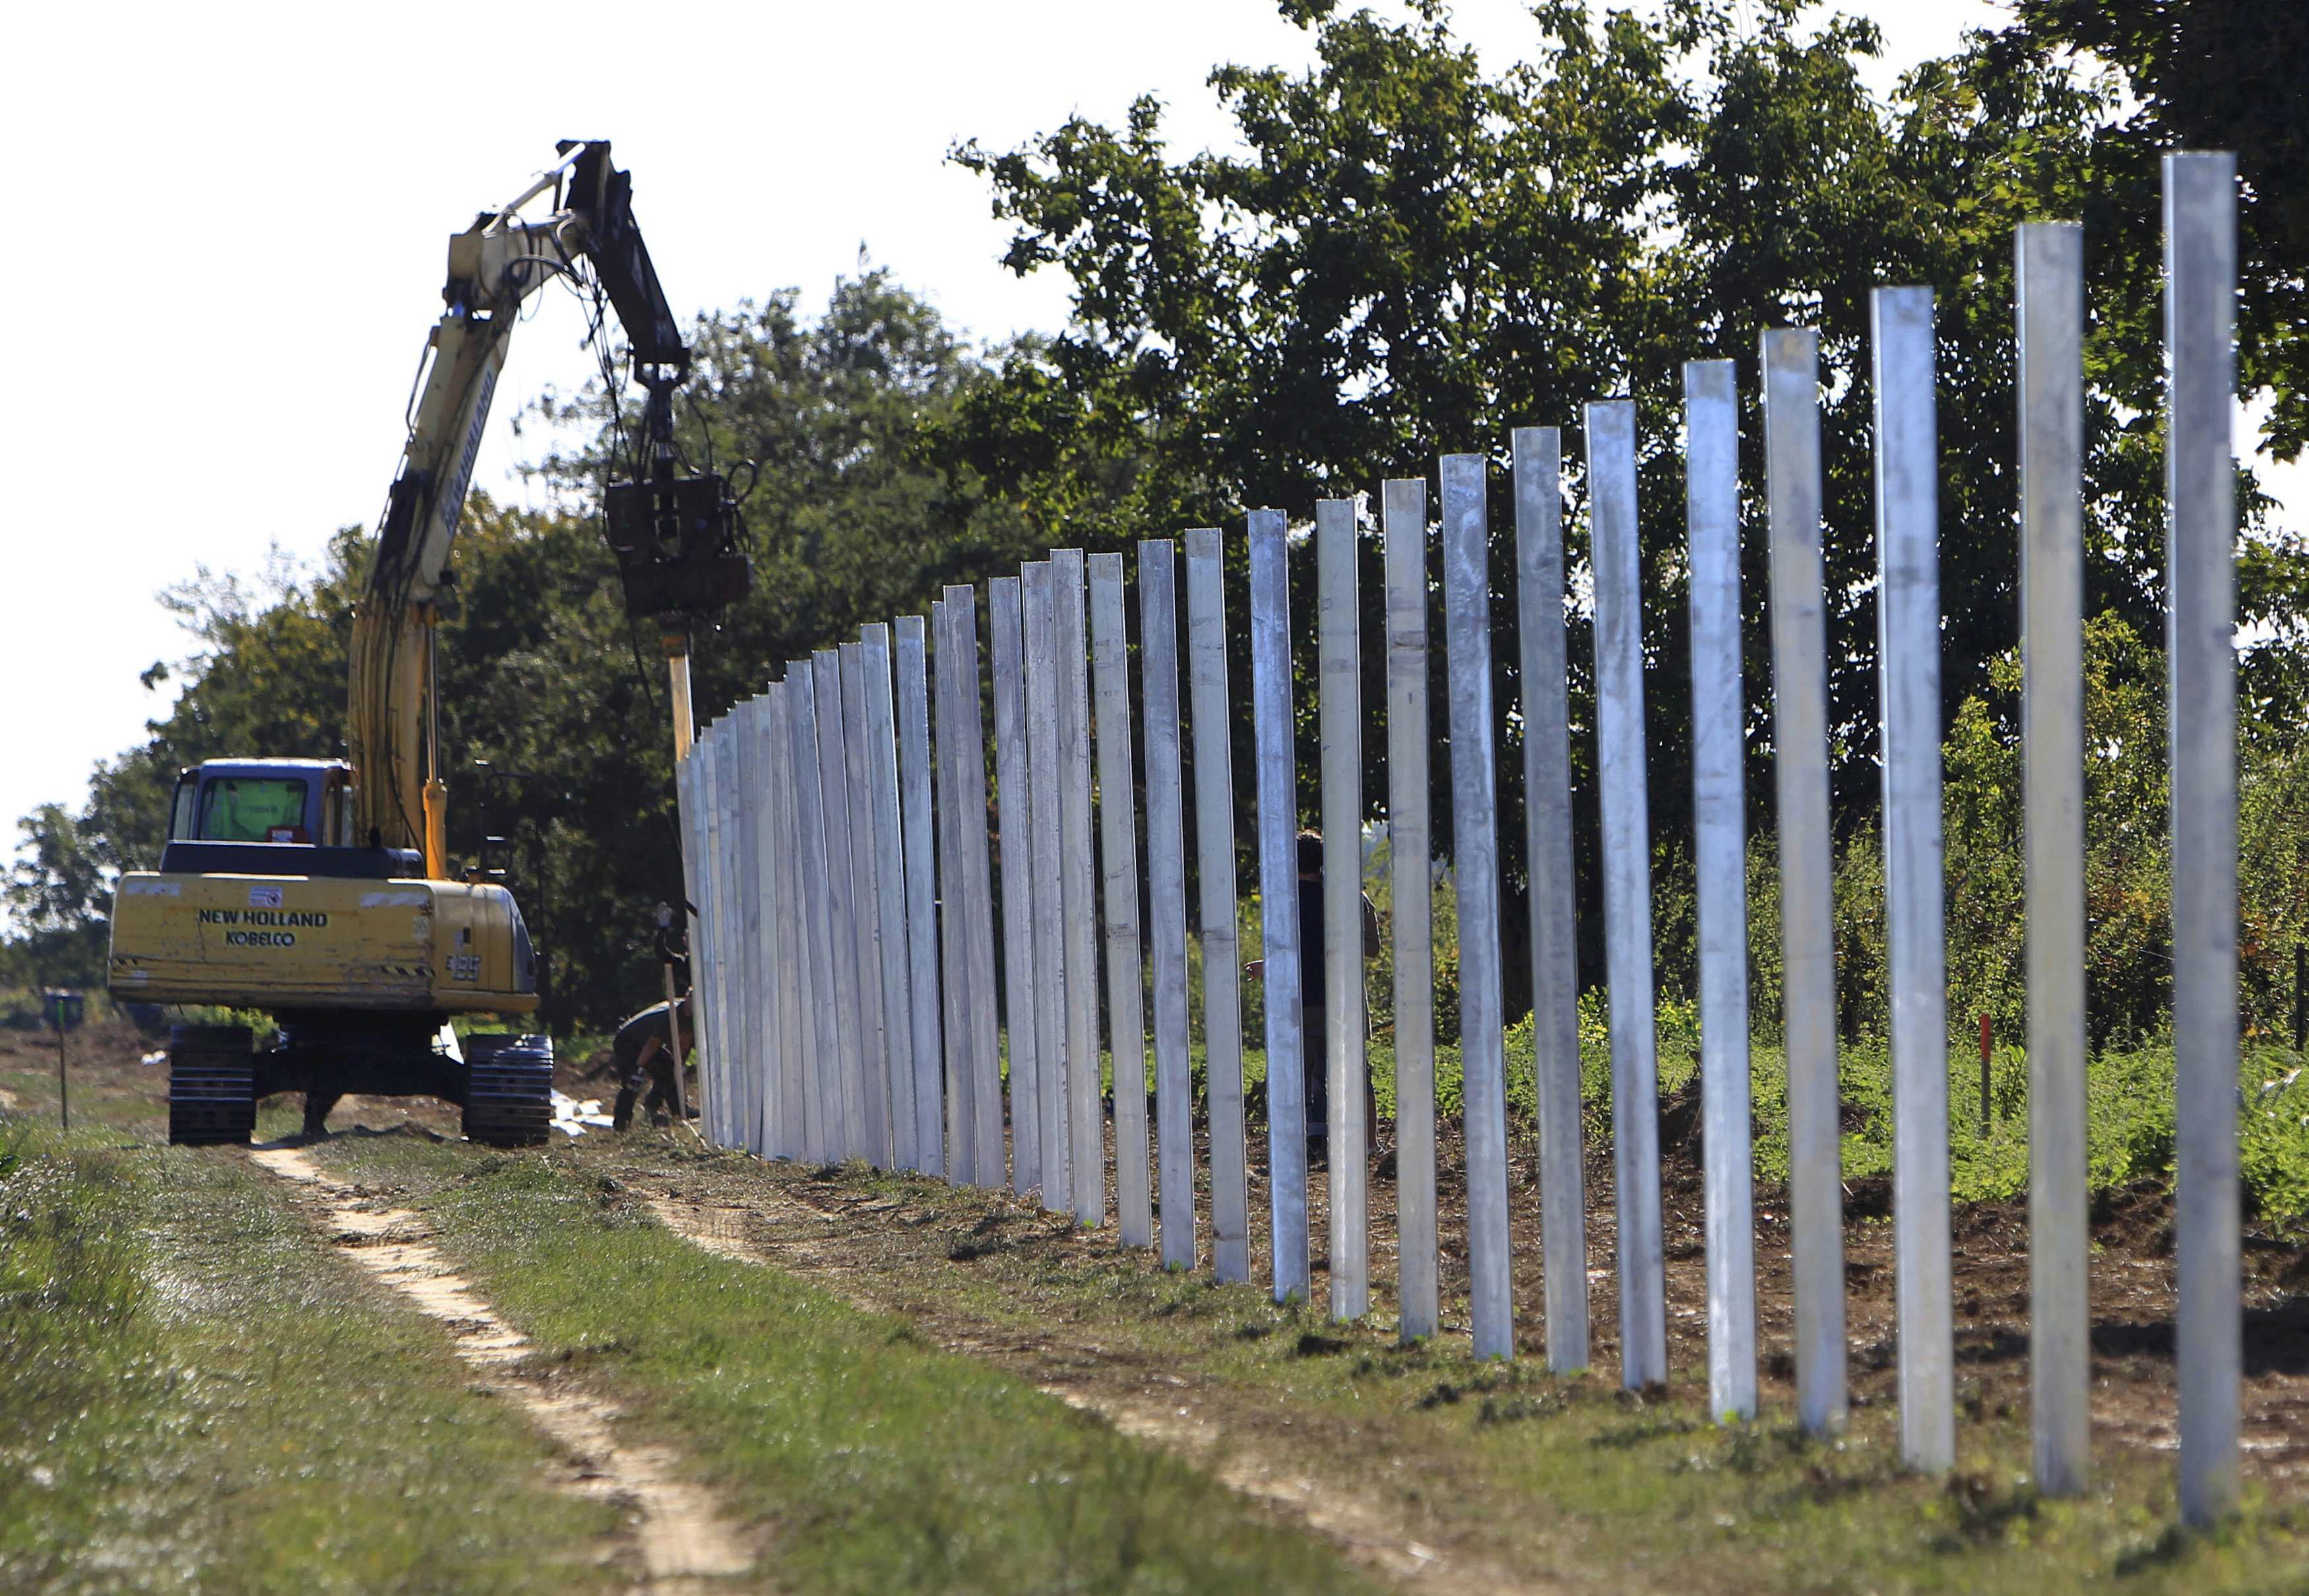 The poles of a new fence on the border with Croatia are set up near Beremend, Hungary, September 21, 2015. On Sunday Hungary erected a steel gate and fence posts at a border crossing with Croatia, the EU's newest member state. Overwhelmed by an influx of some 25,000 migrants this week, Croatia has been sending them north by bus and train to Hungary, which has waved them on to Austria. REUTERS/Bernadett Szabo